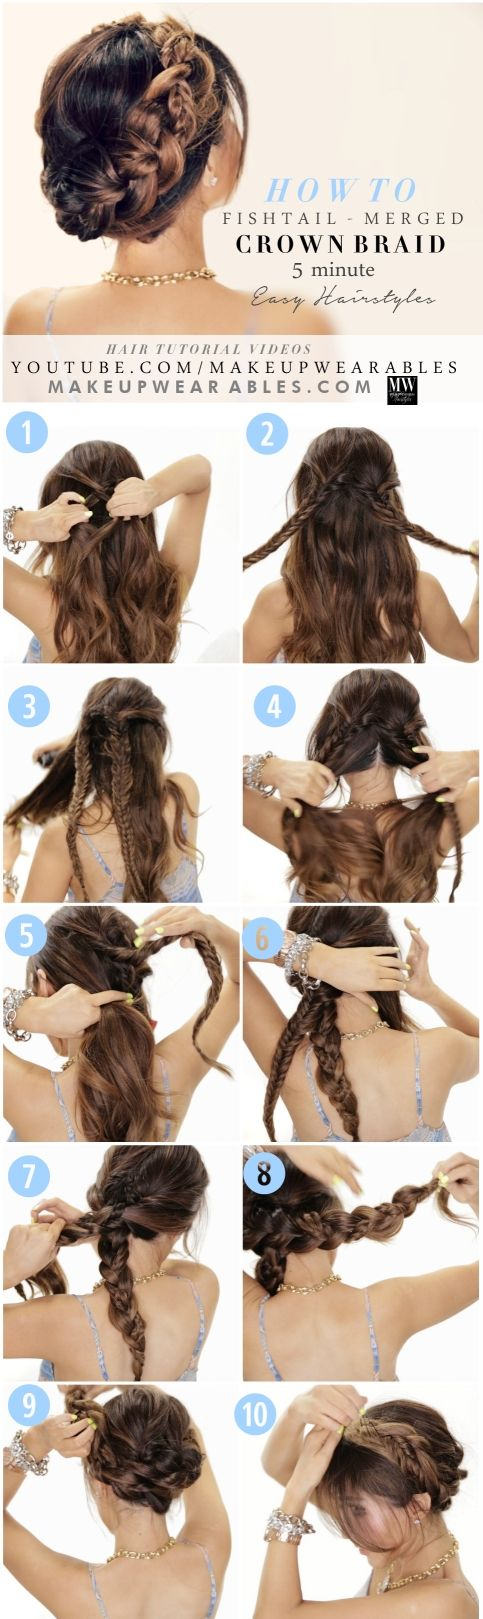 Two braids with the top half, then use them in two more braids on either side, the make it a crown, so gorgeous